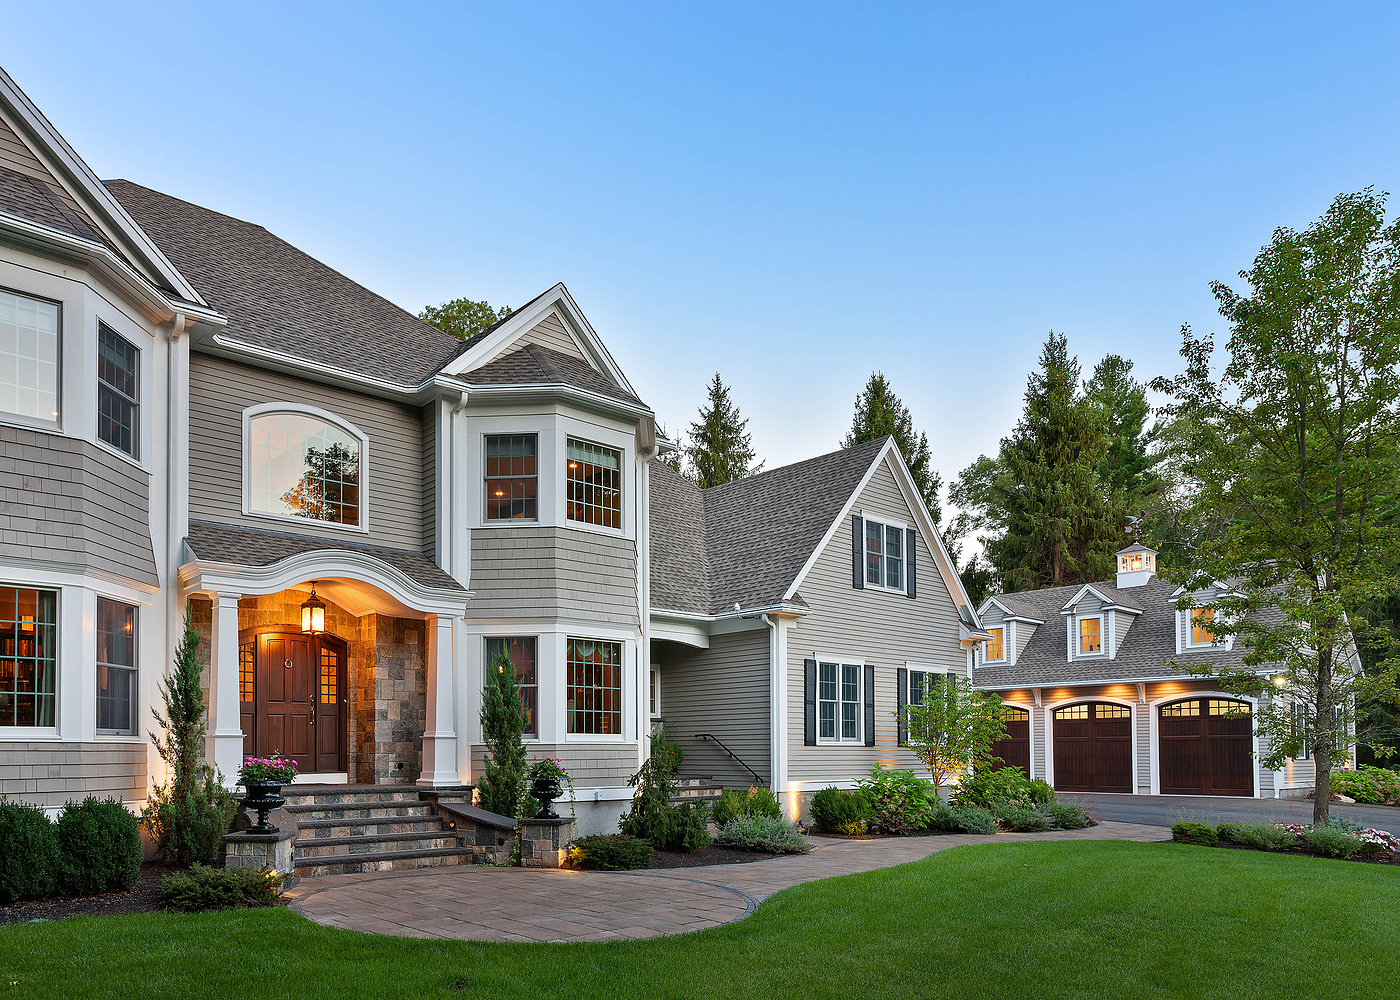 3 Reasons Why a Home Maintenance Company Is a Homeowner's Best Friend